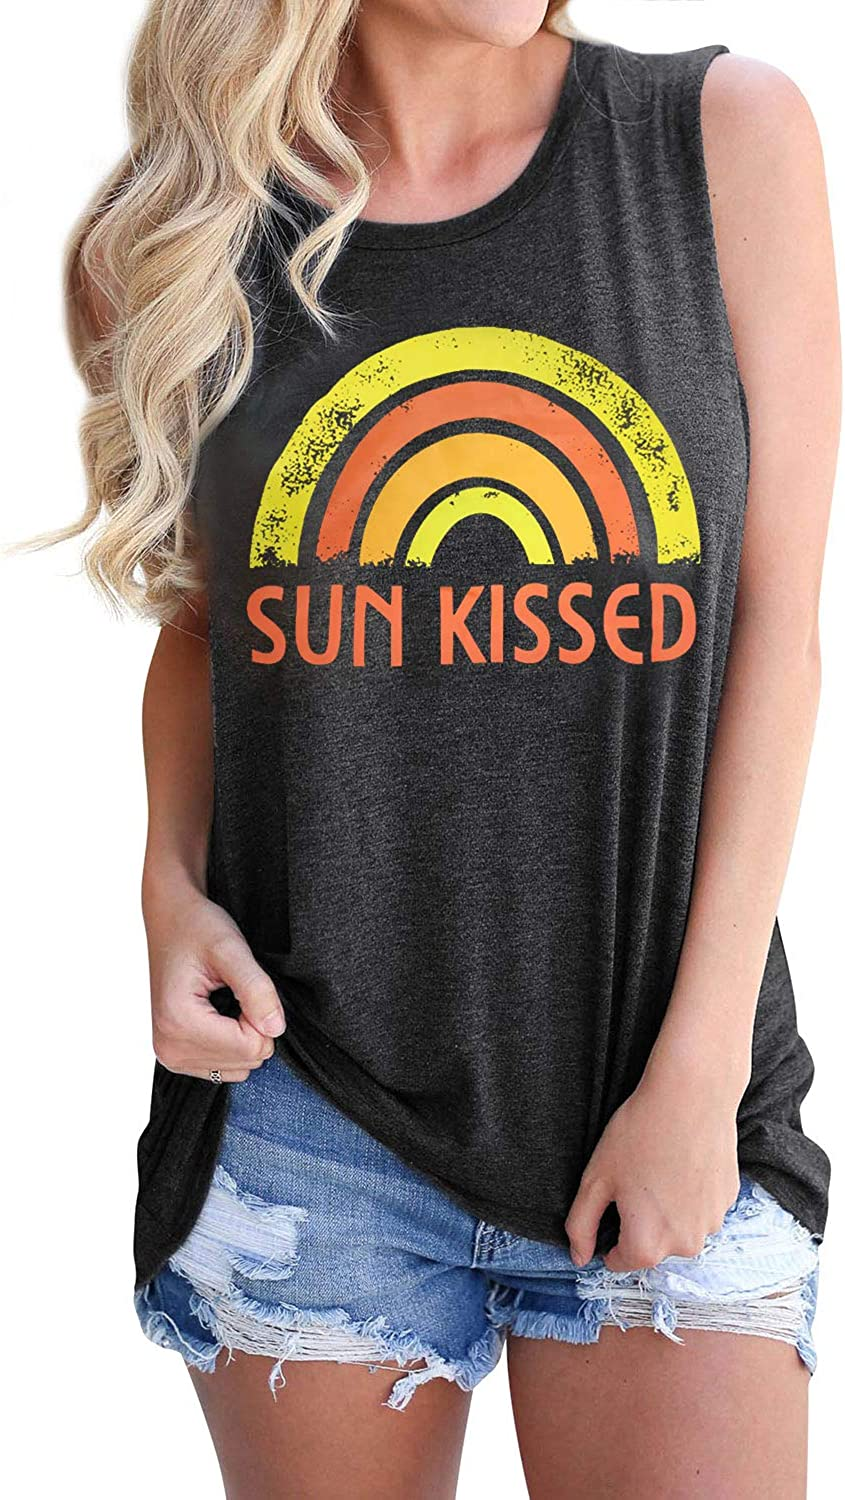 Nlife Womens Tank Tops Novelty Graphic Tees Shirt with Sayings Casual Tshirts Summer Ladies Tops : Clothing, Shoes & Jewelry